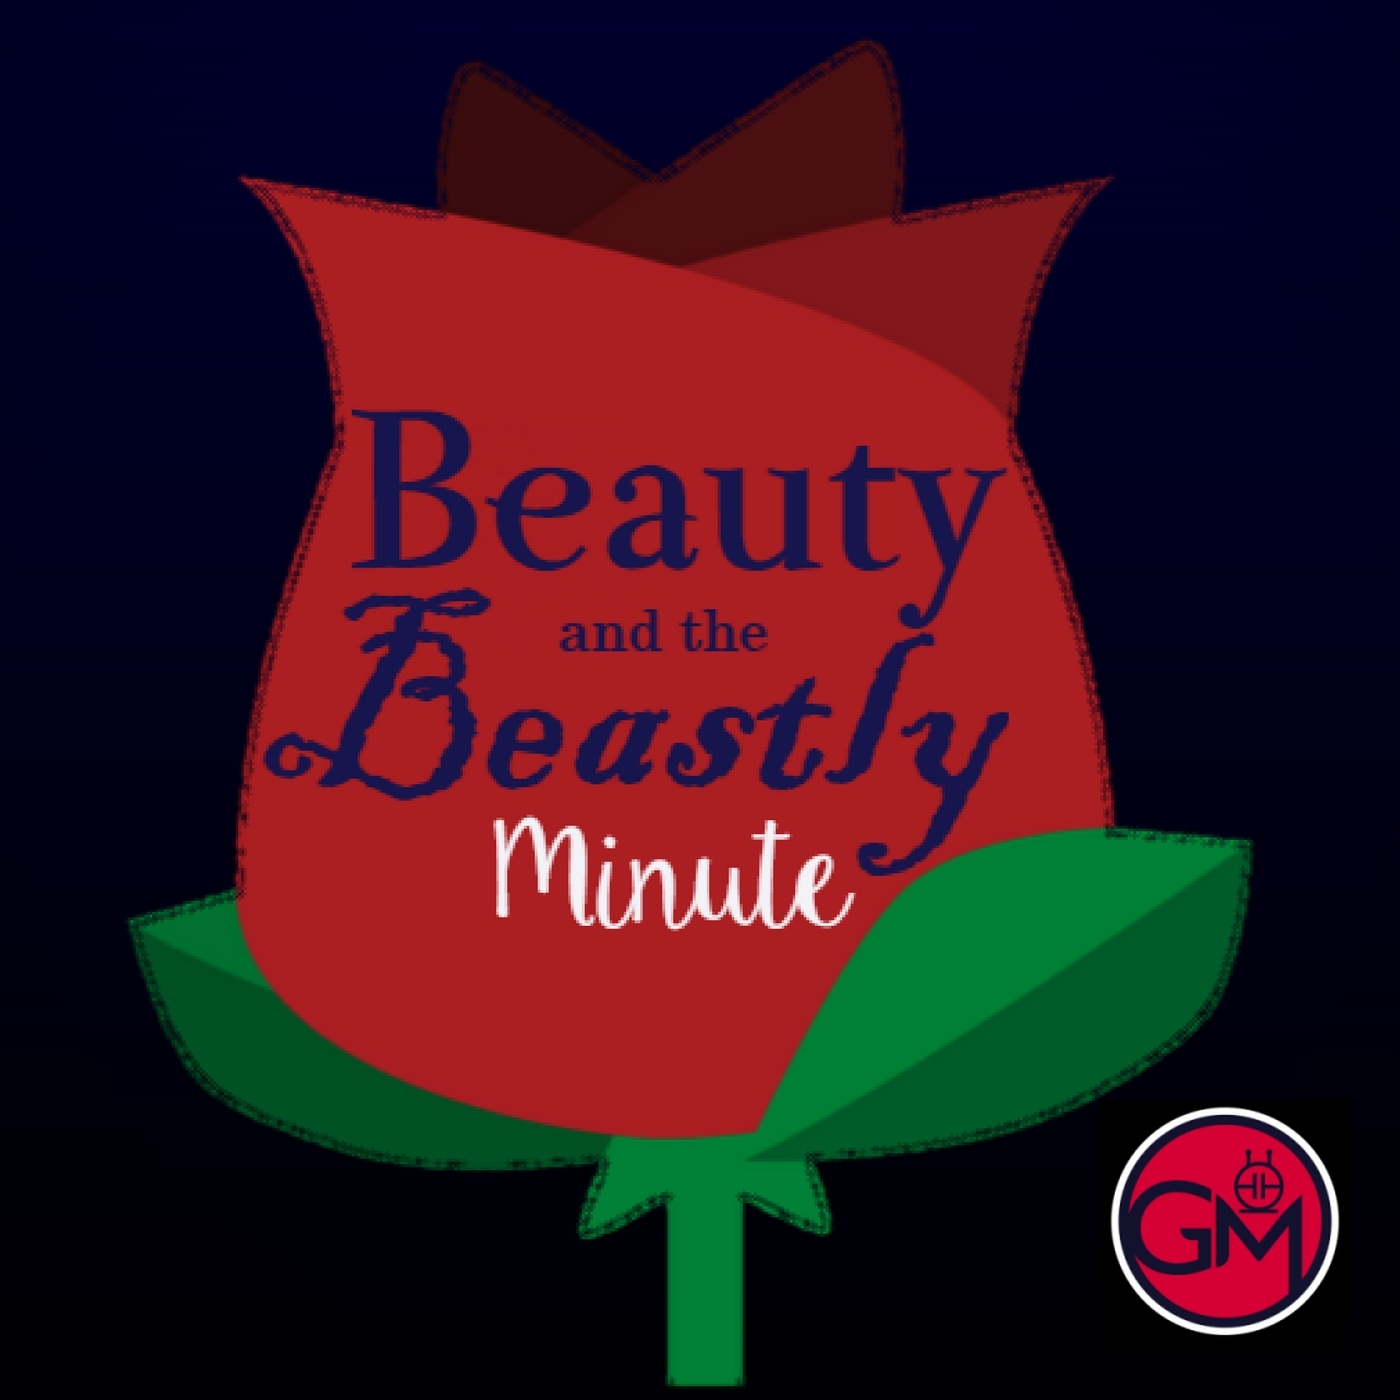 Beauty and the Beastly Minute